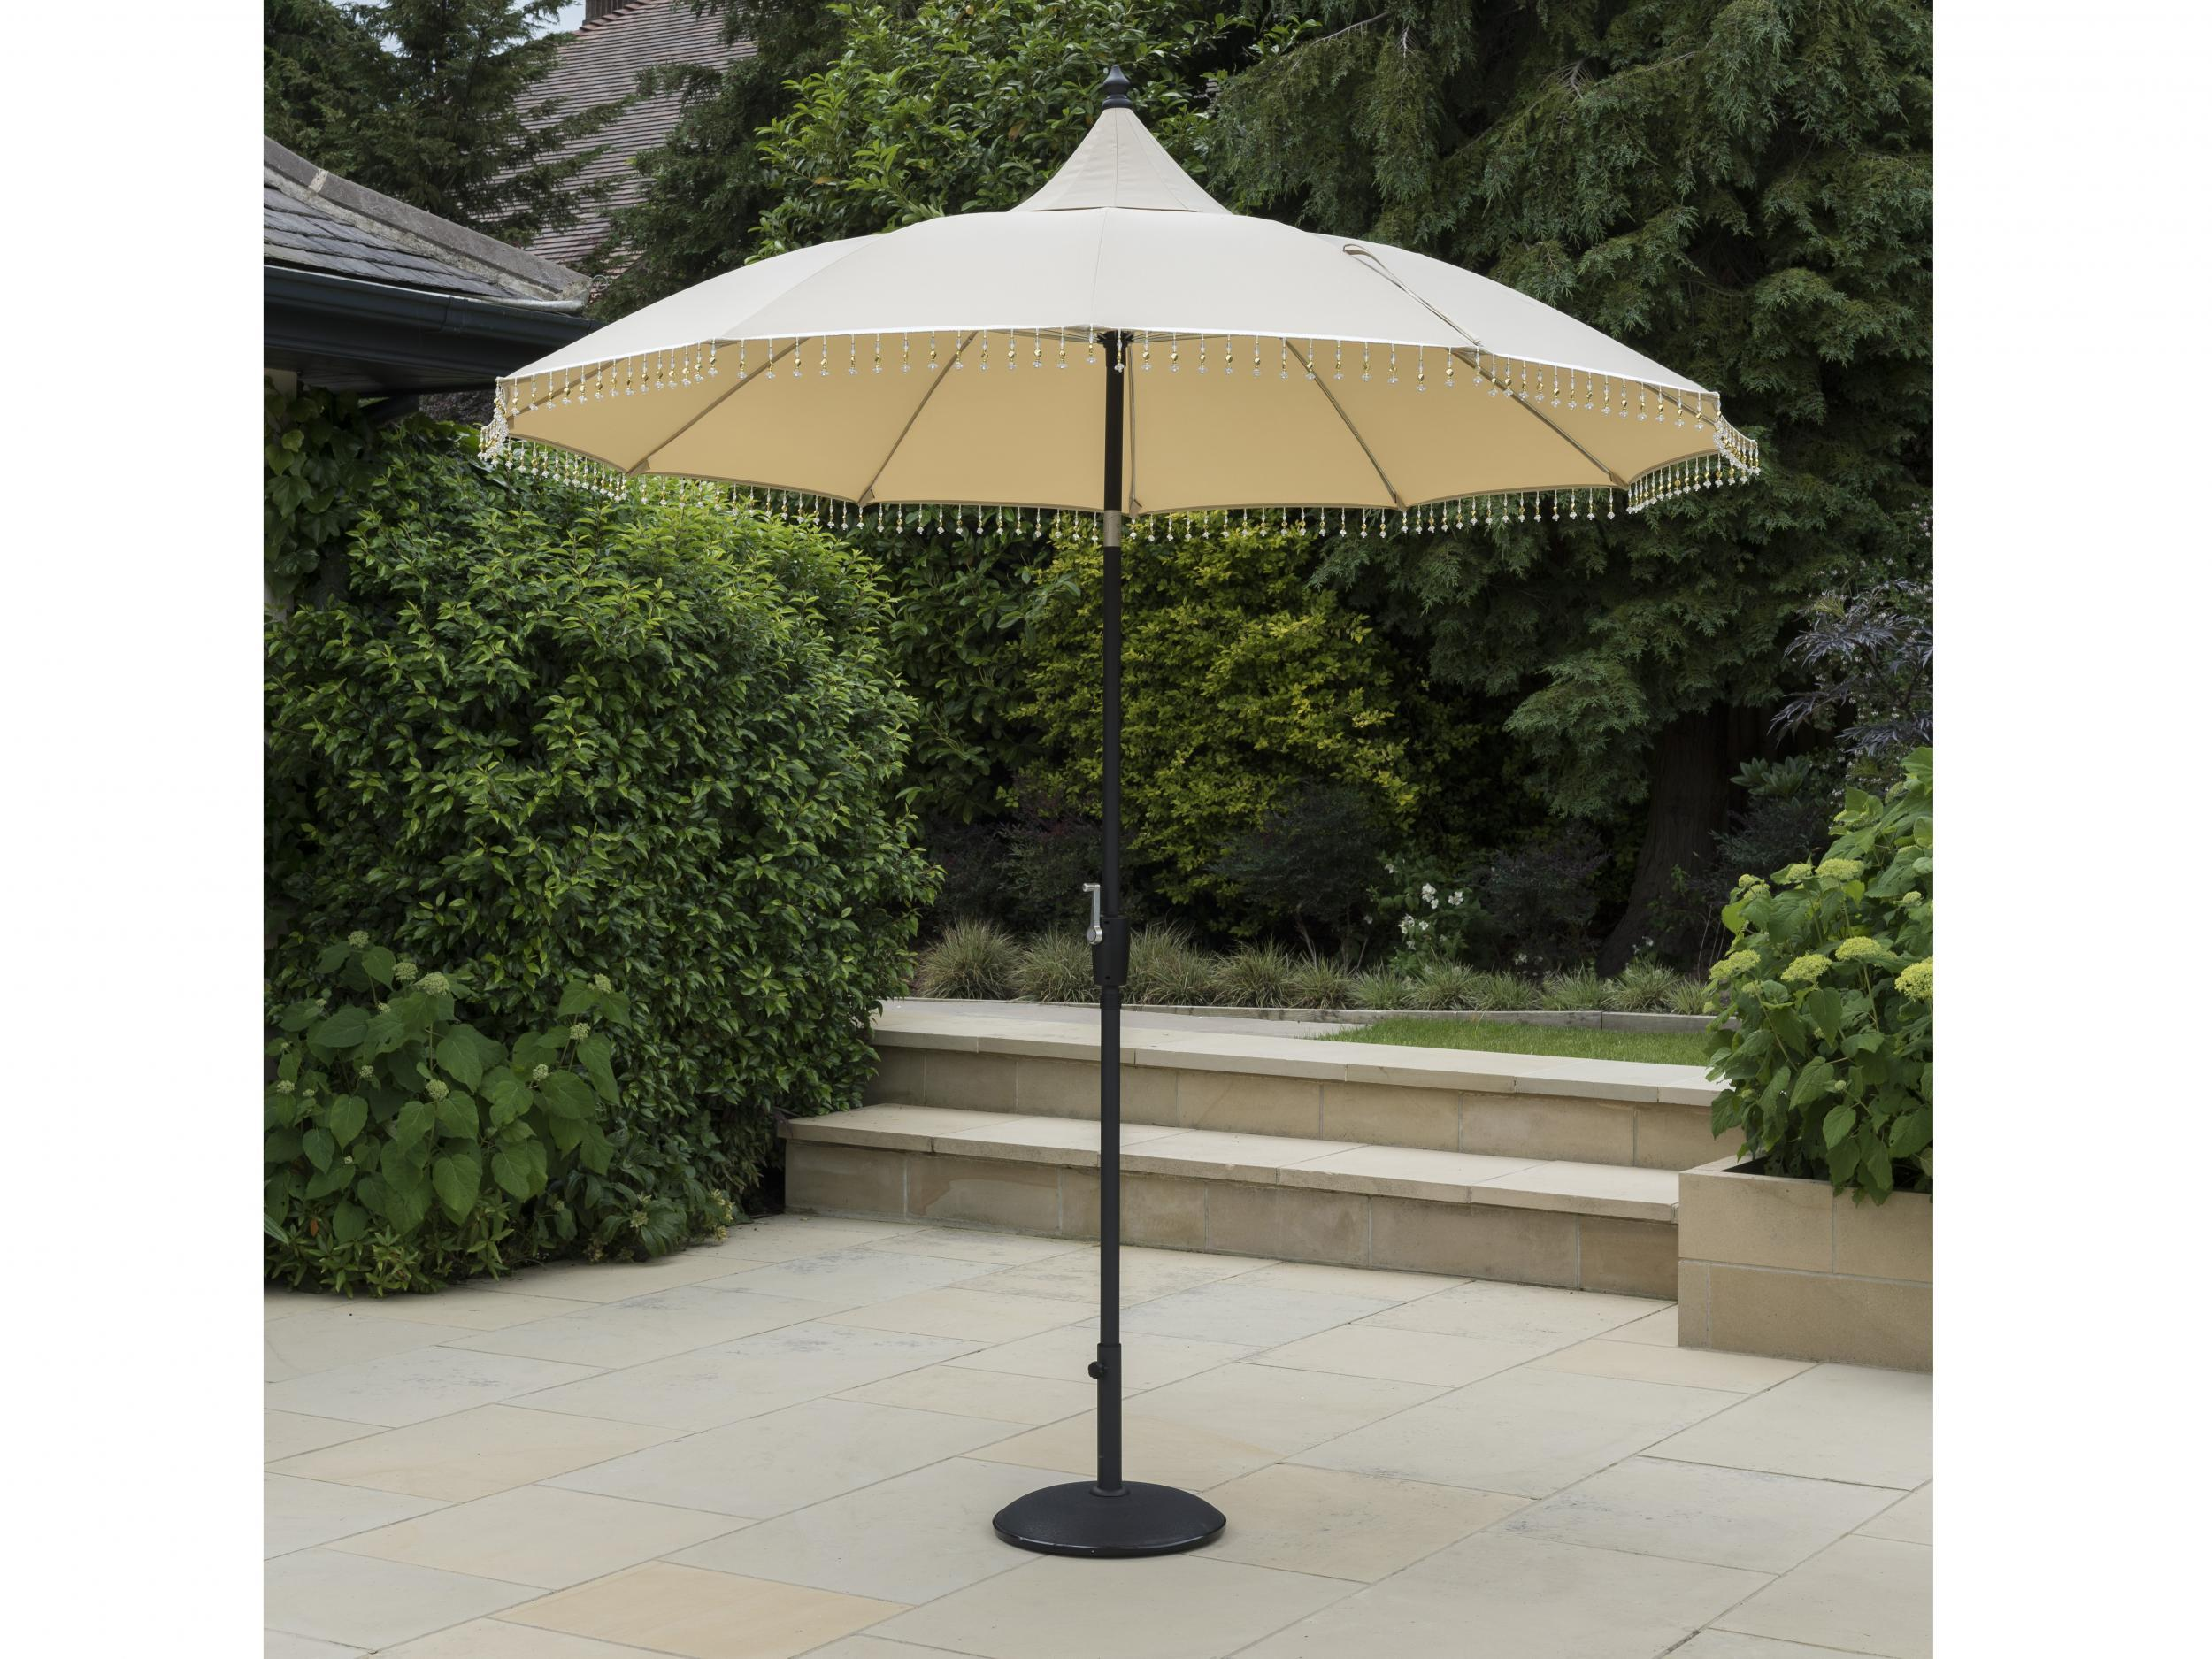 e08983c9ce Best garden parasol: Choose from models that are adjustable, stylish ...